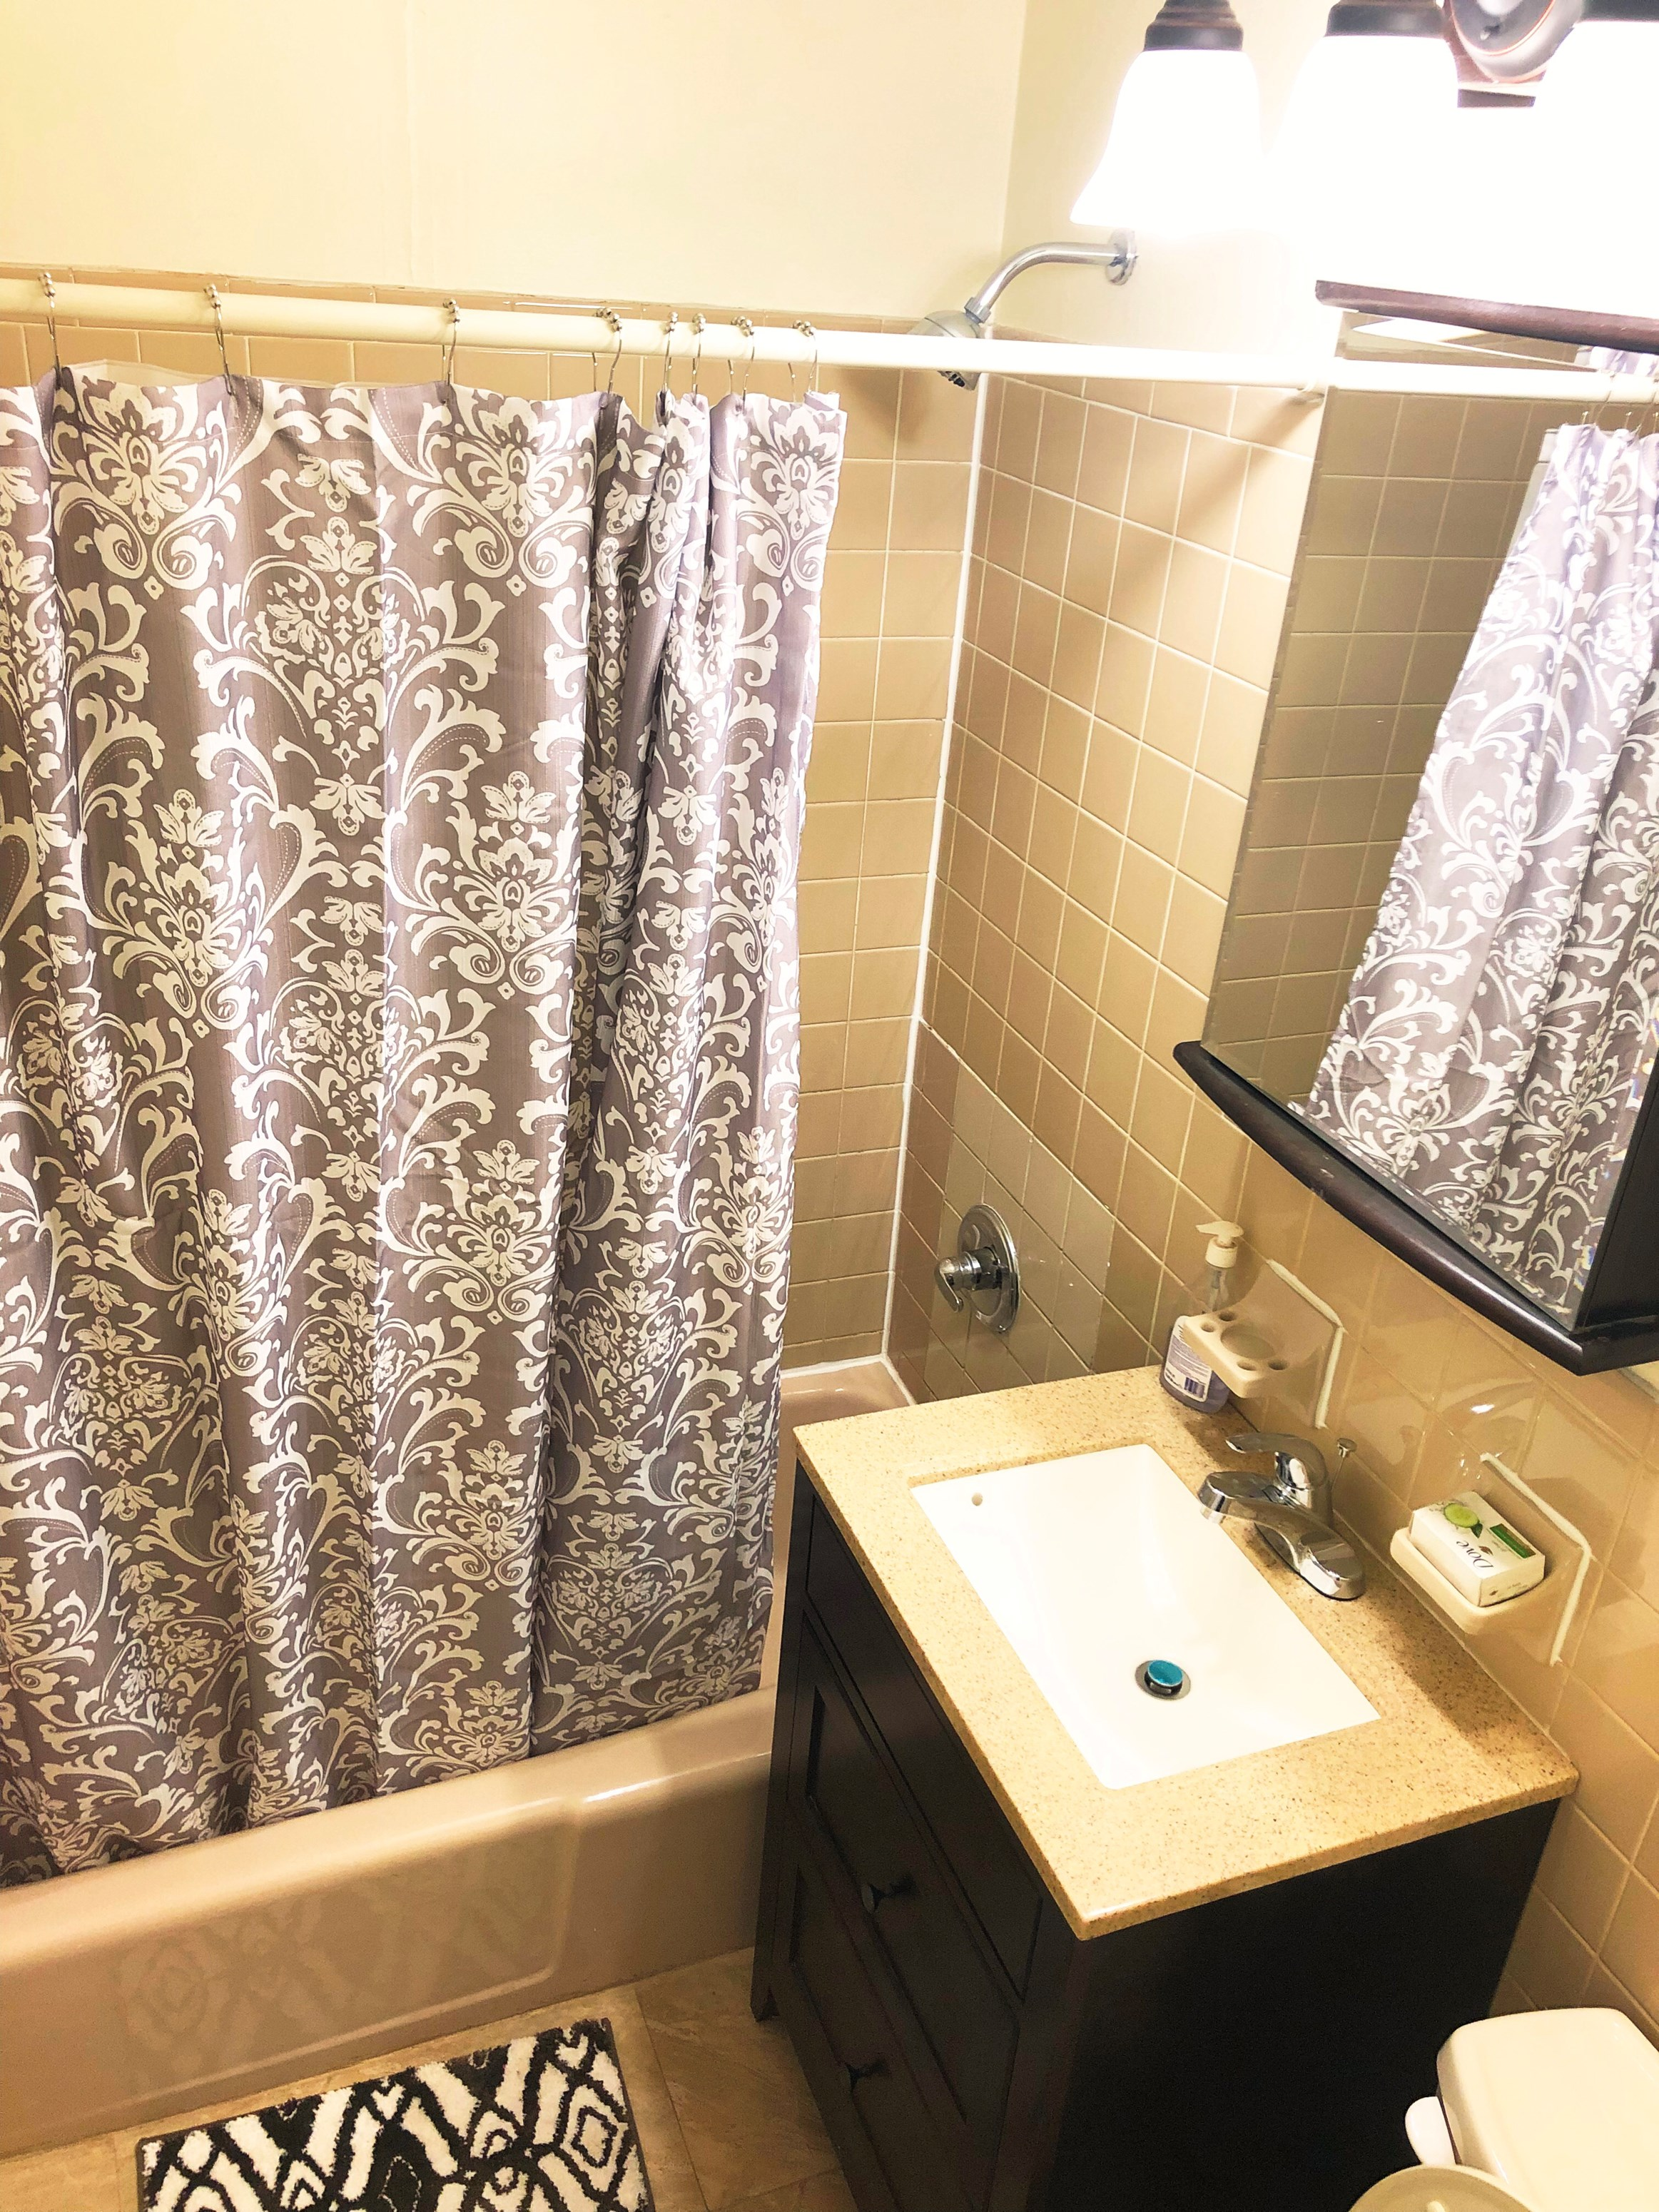 Apartments In Baltimore County All Utilities Included Best Rentals 2017 11  09 11 28 33 752 9345954 Apartments In Baltimore County All Utilities  Included 2. 2 Bedroom Apartments All Utilities walmart coffee tables and end